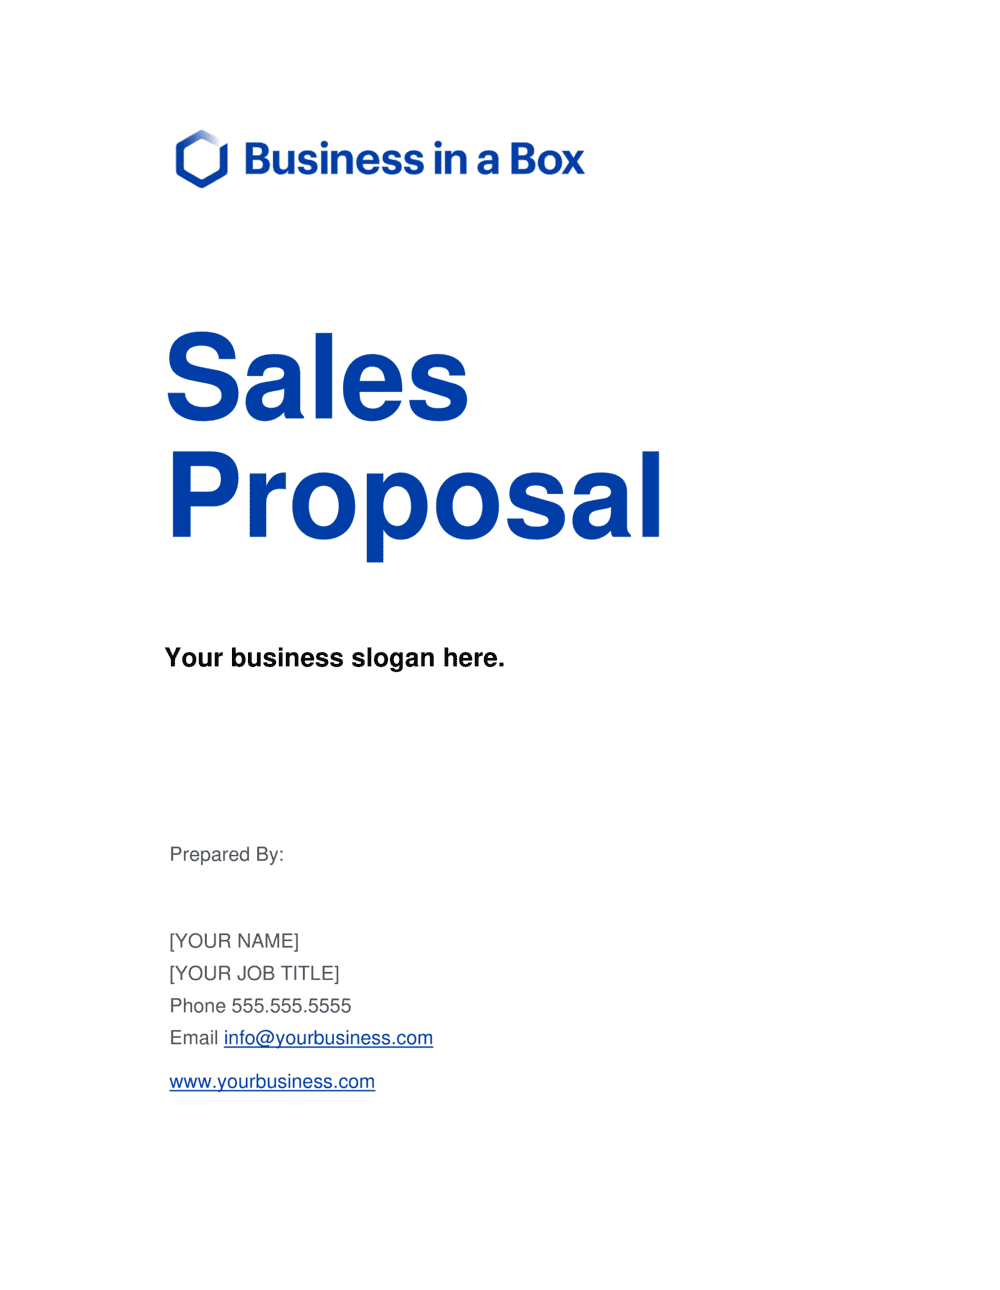 Business-in-a-Box's Sales Proposal Short Version Template